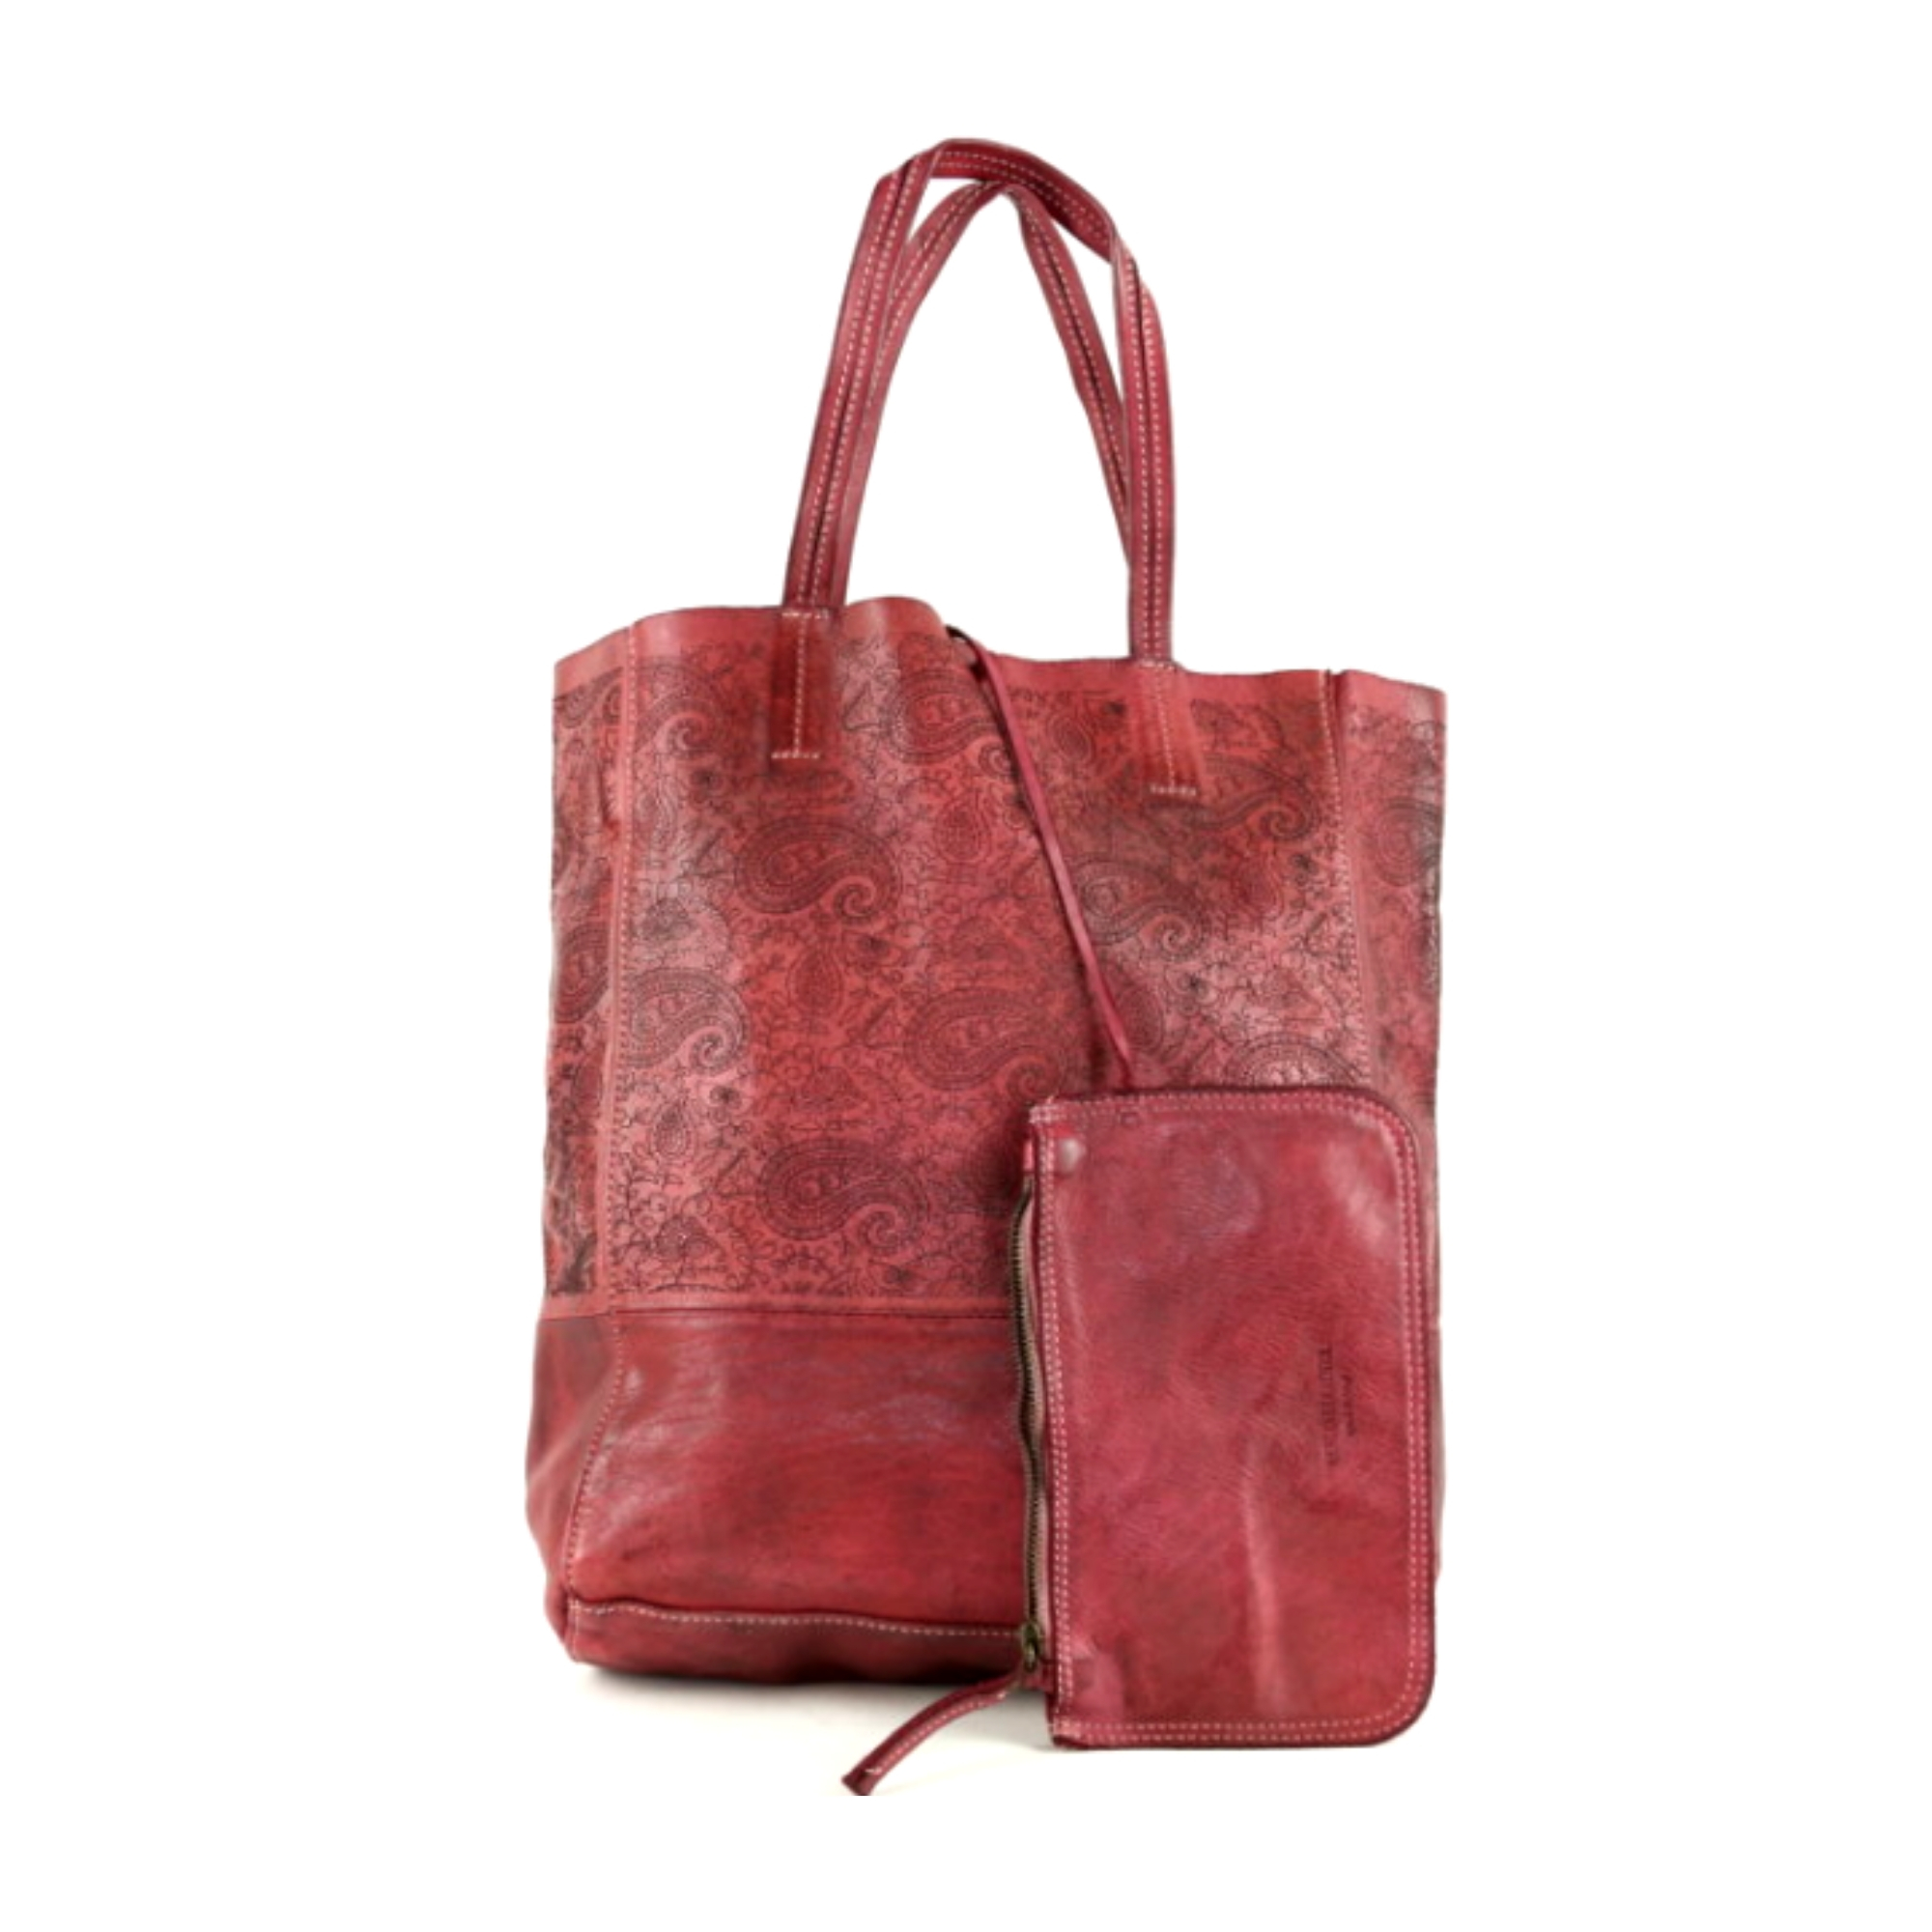 LEILA Shopper Bag With Paisley Pattern Bordeaux